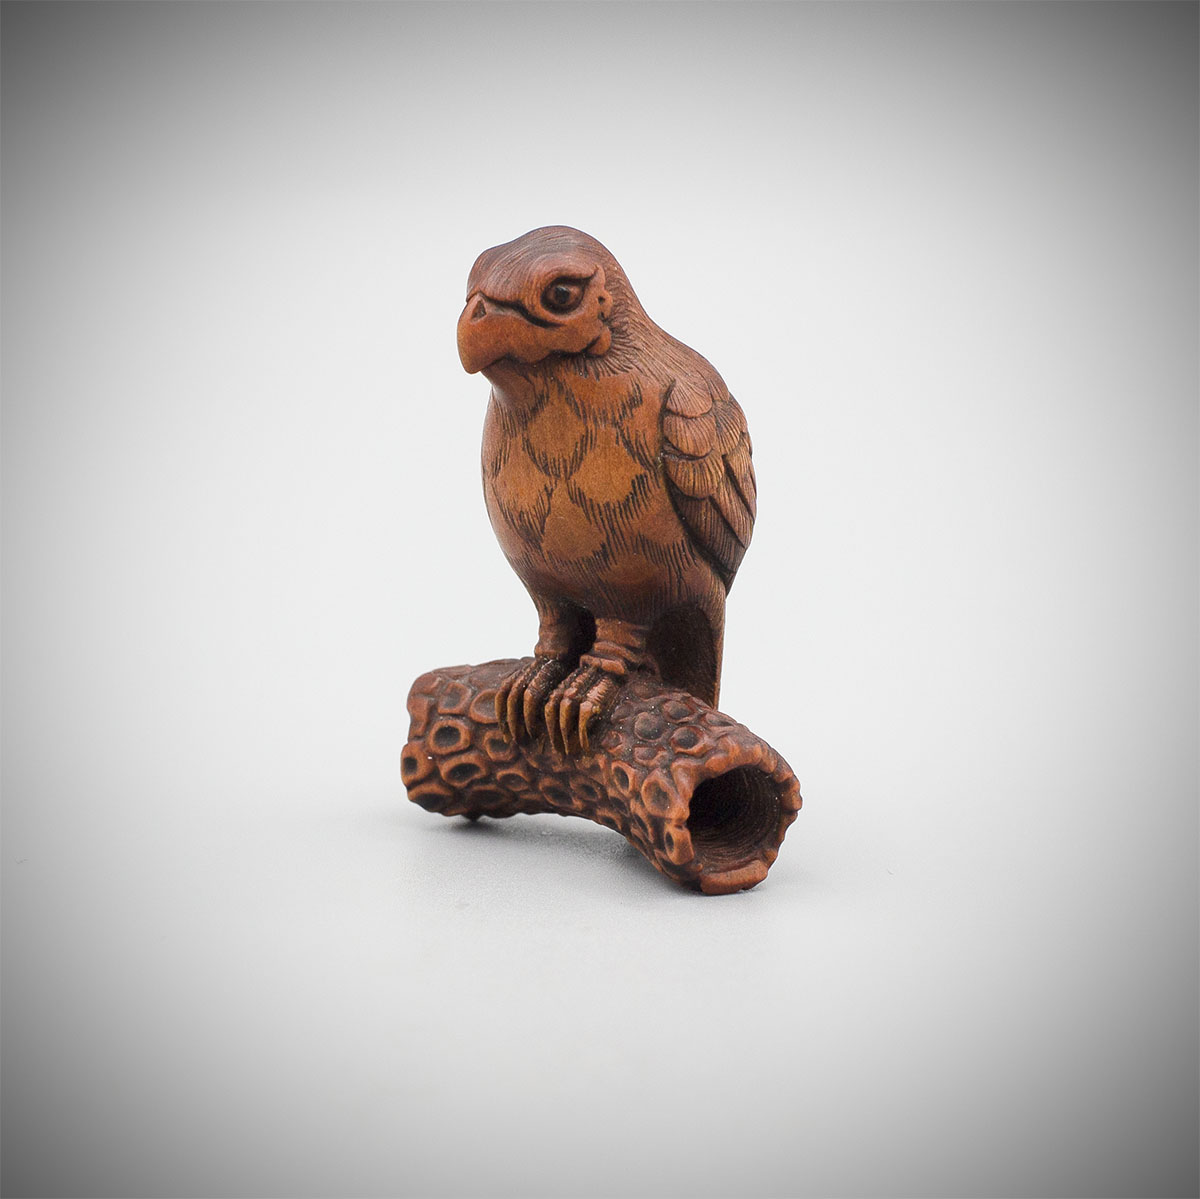 Wood Netsuke of a Kite on a Pine Branch by Gyokko, MR3565_v.1